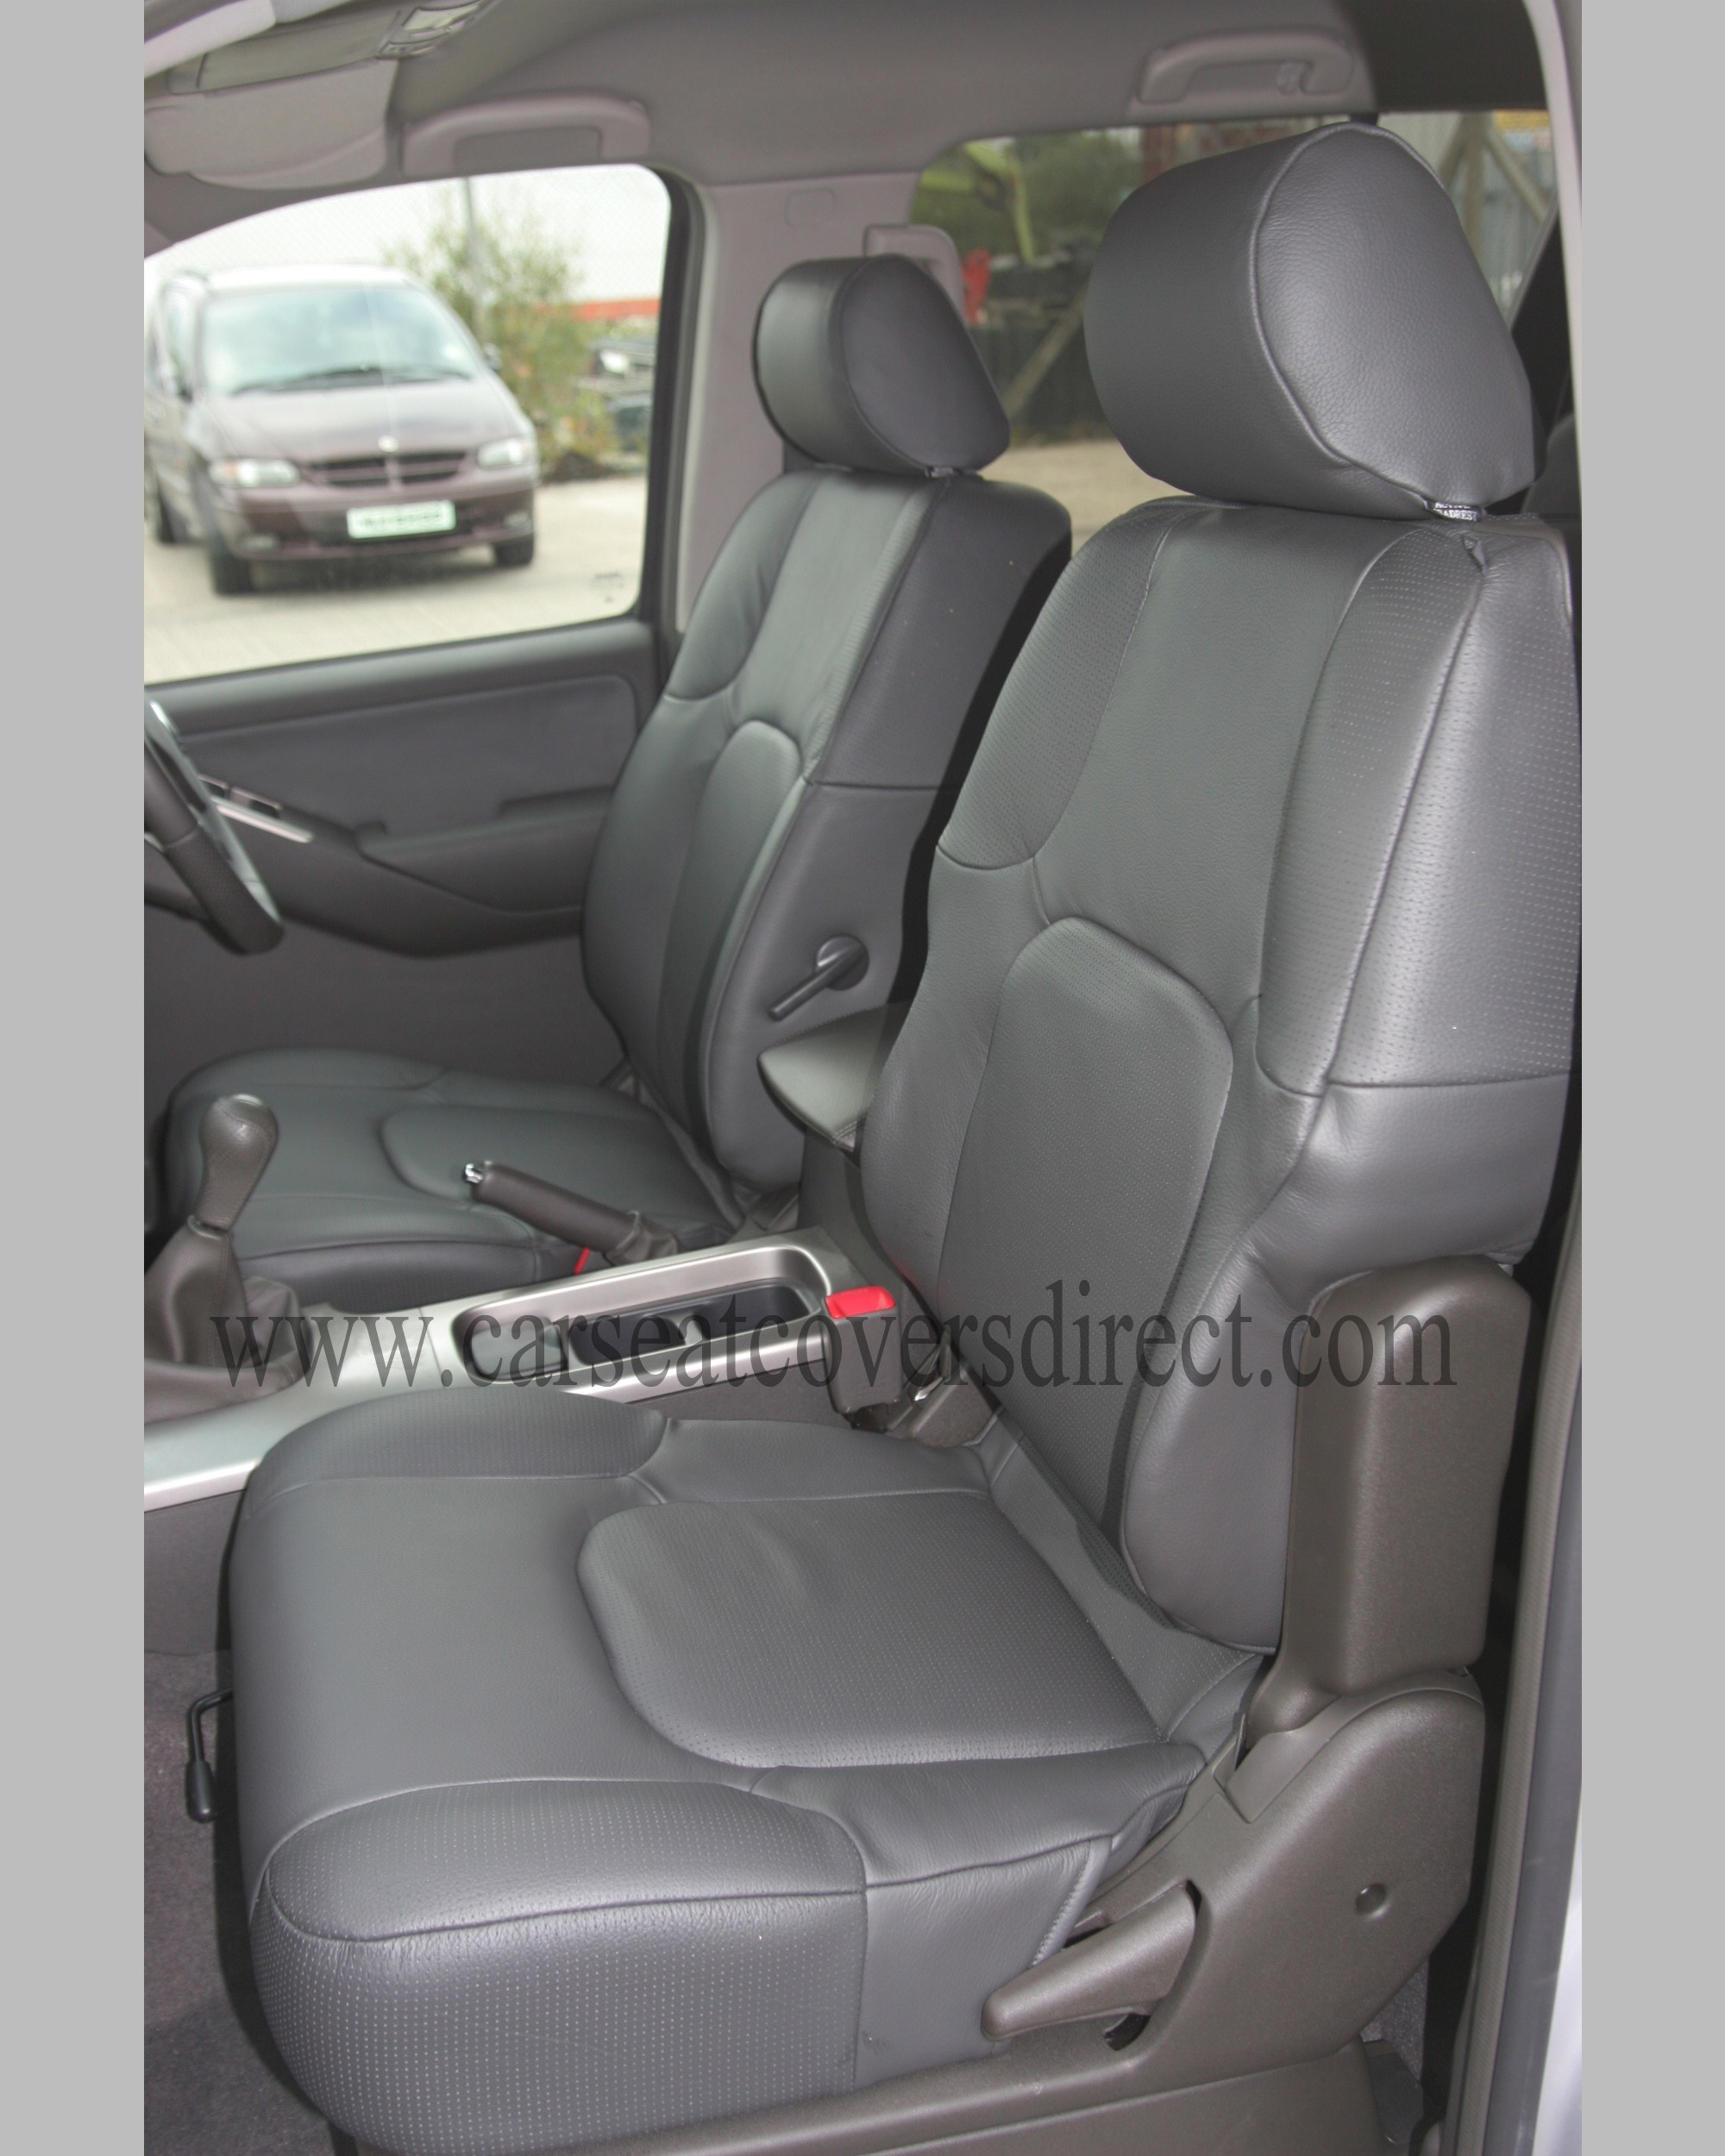 nissan pathfinder leather retrim car seat covers direct tailored to your choice. Black Bedroom Furniture Sets. Home Design Ideas